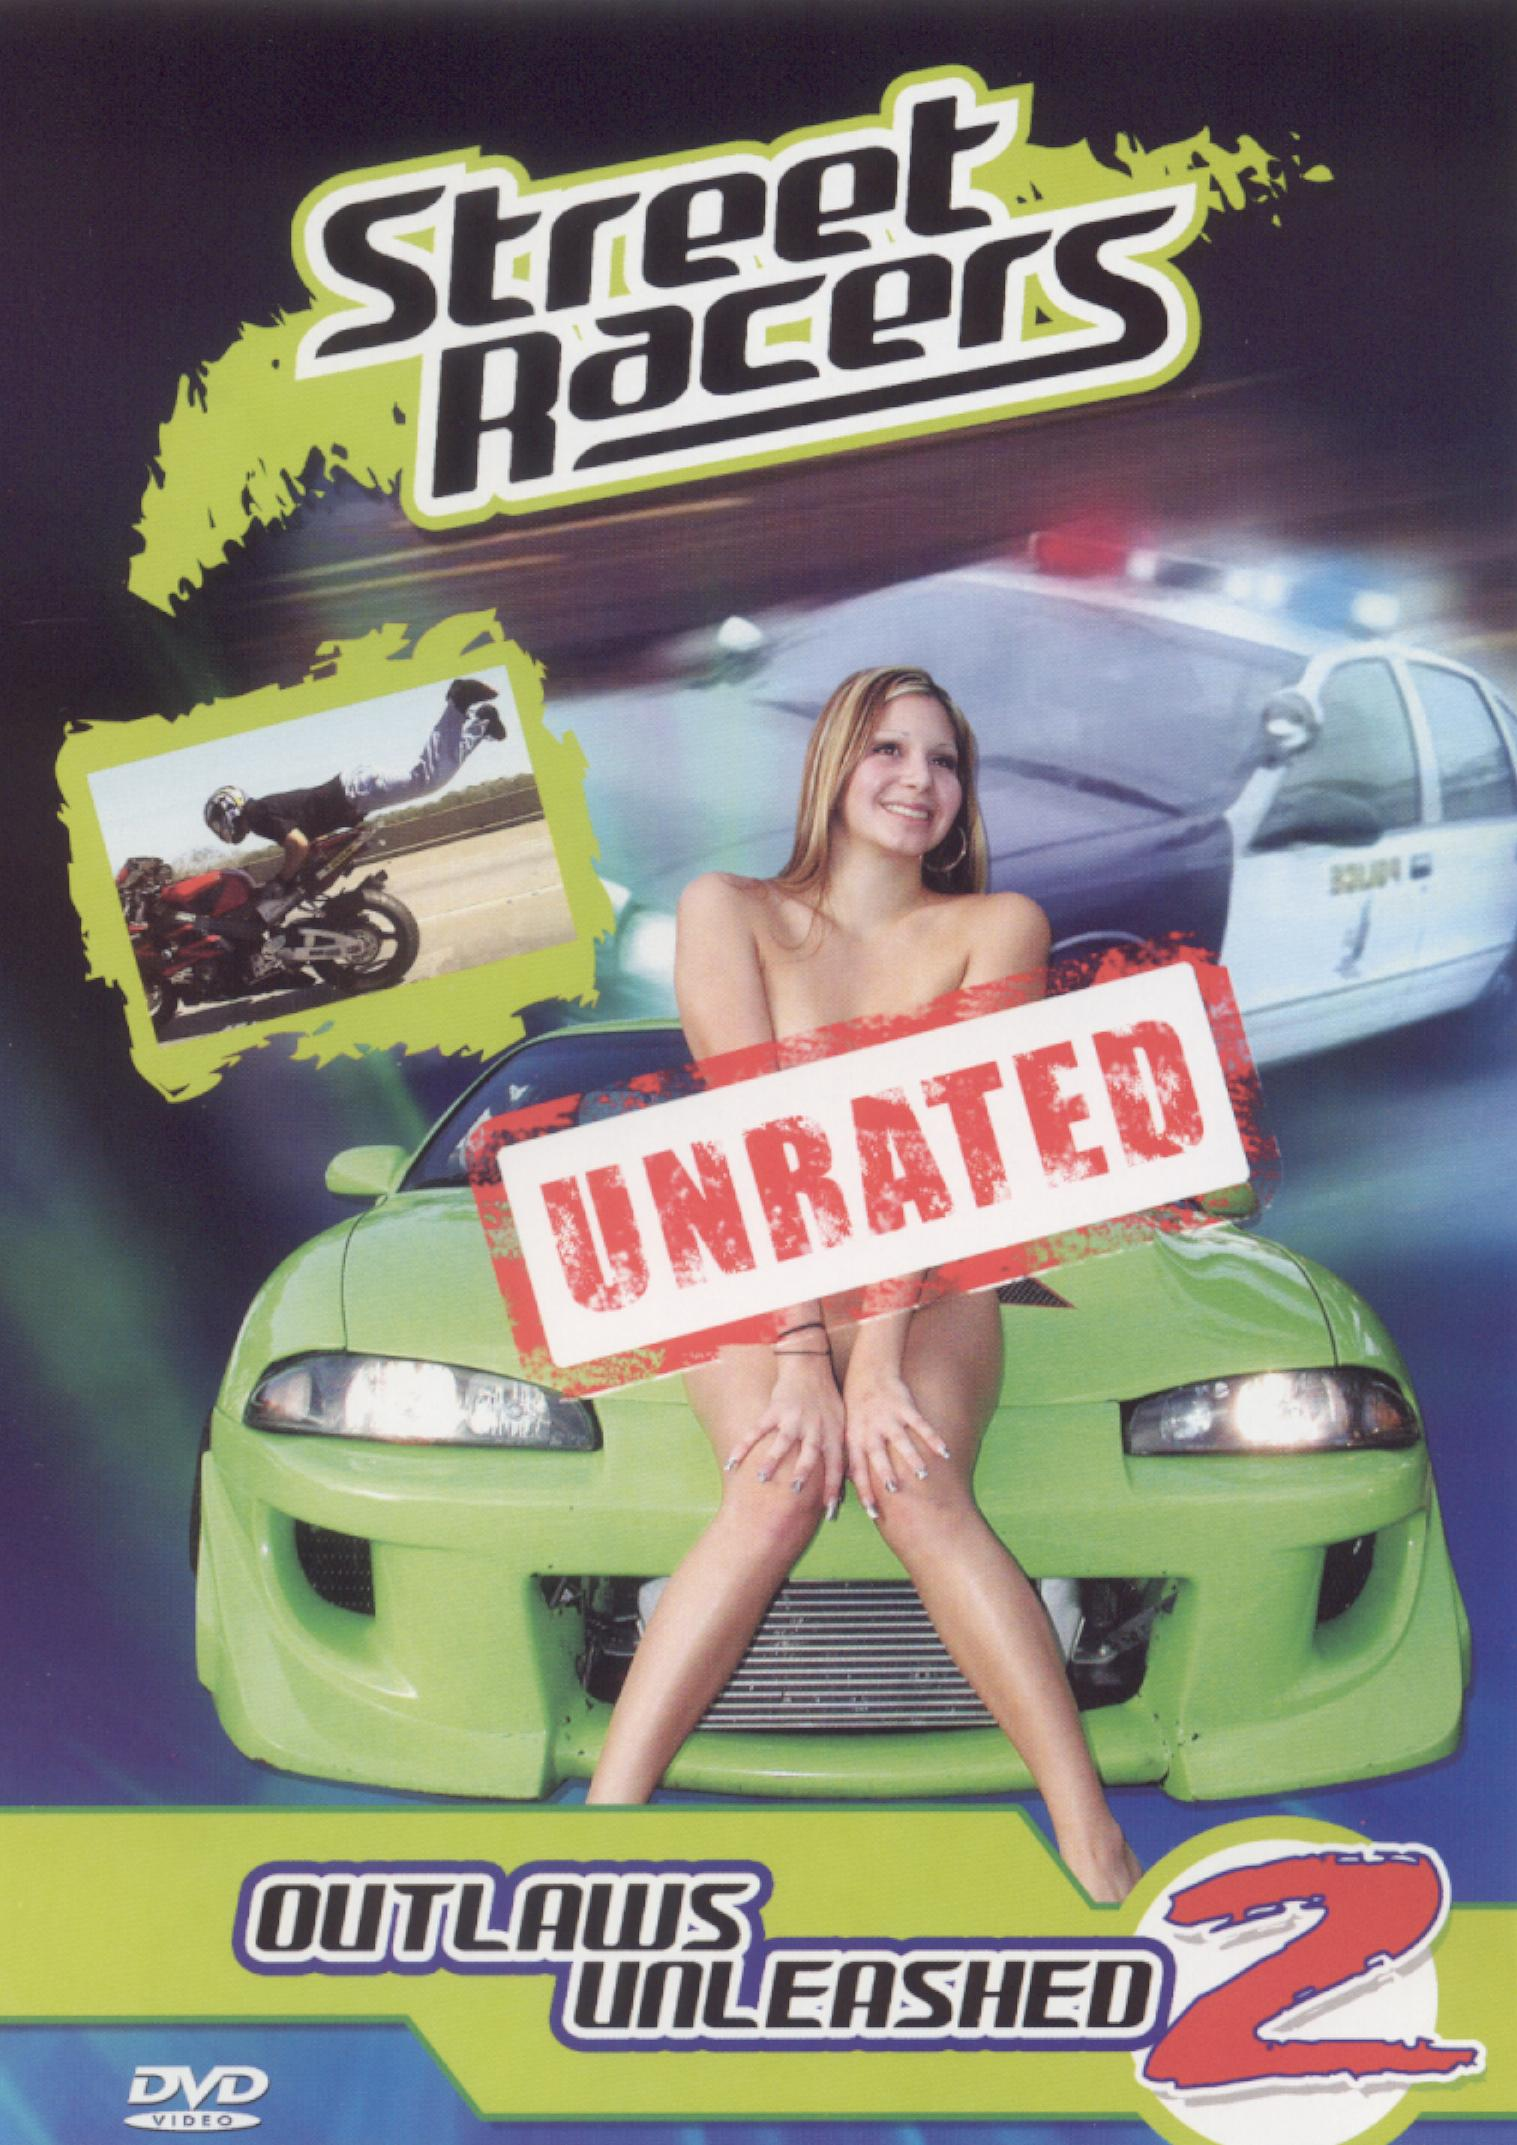 Street Racers: Outlaws Unleashed, Vol. 2